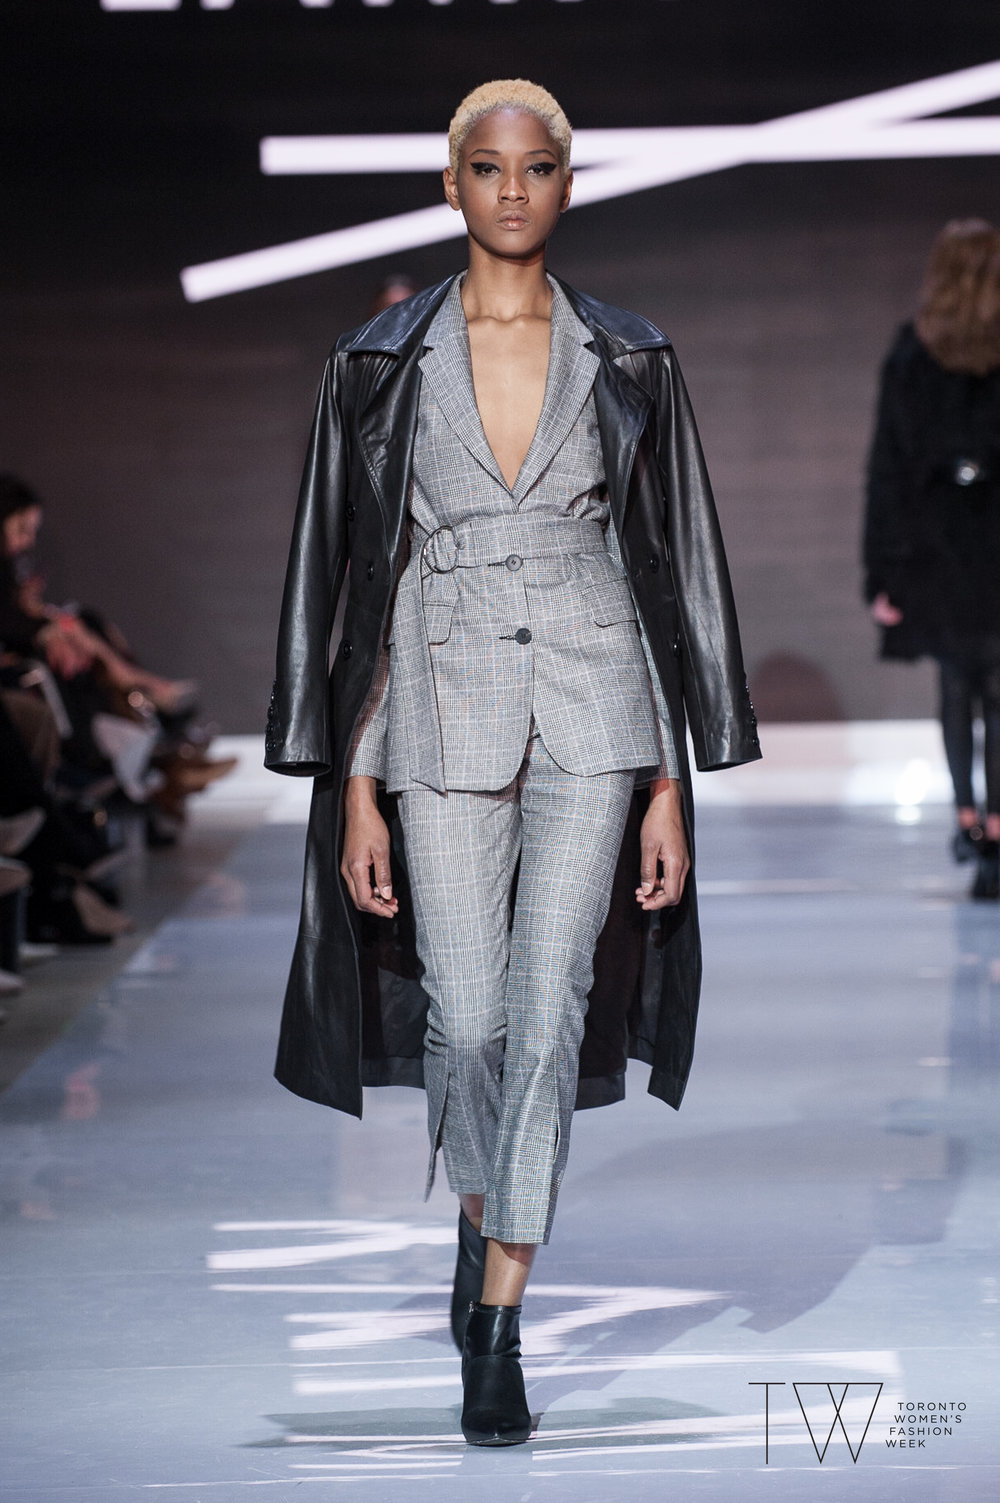 Lamarque image courtesy of Toronto Women's Fashion Week